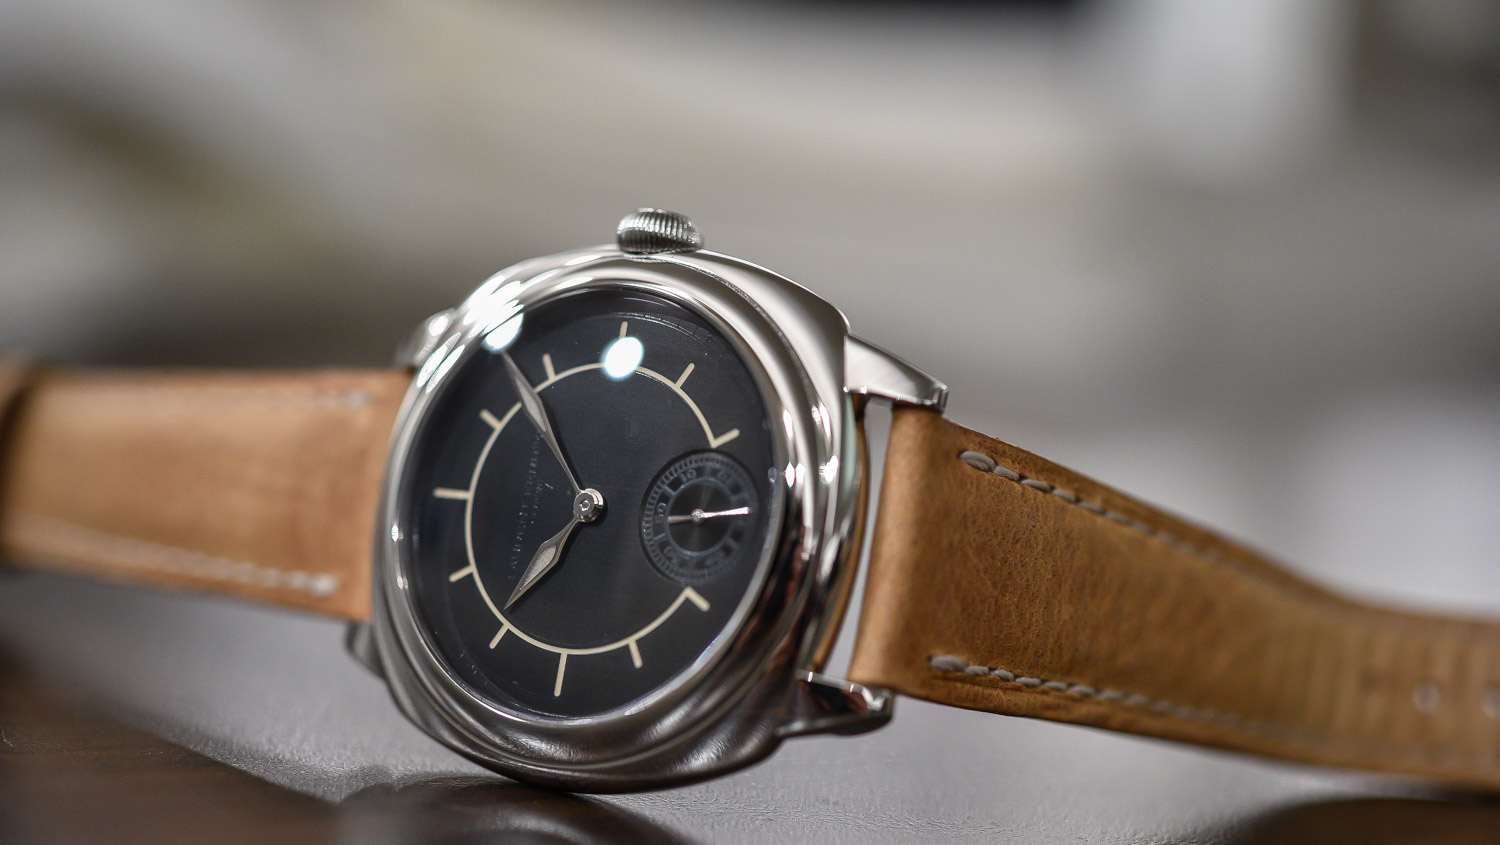 SIHH 2016 – Laurent Ferrier Galet Square Boreal With Superluminova On The Dial